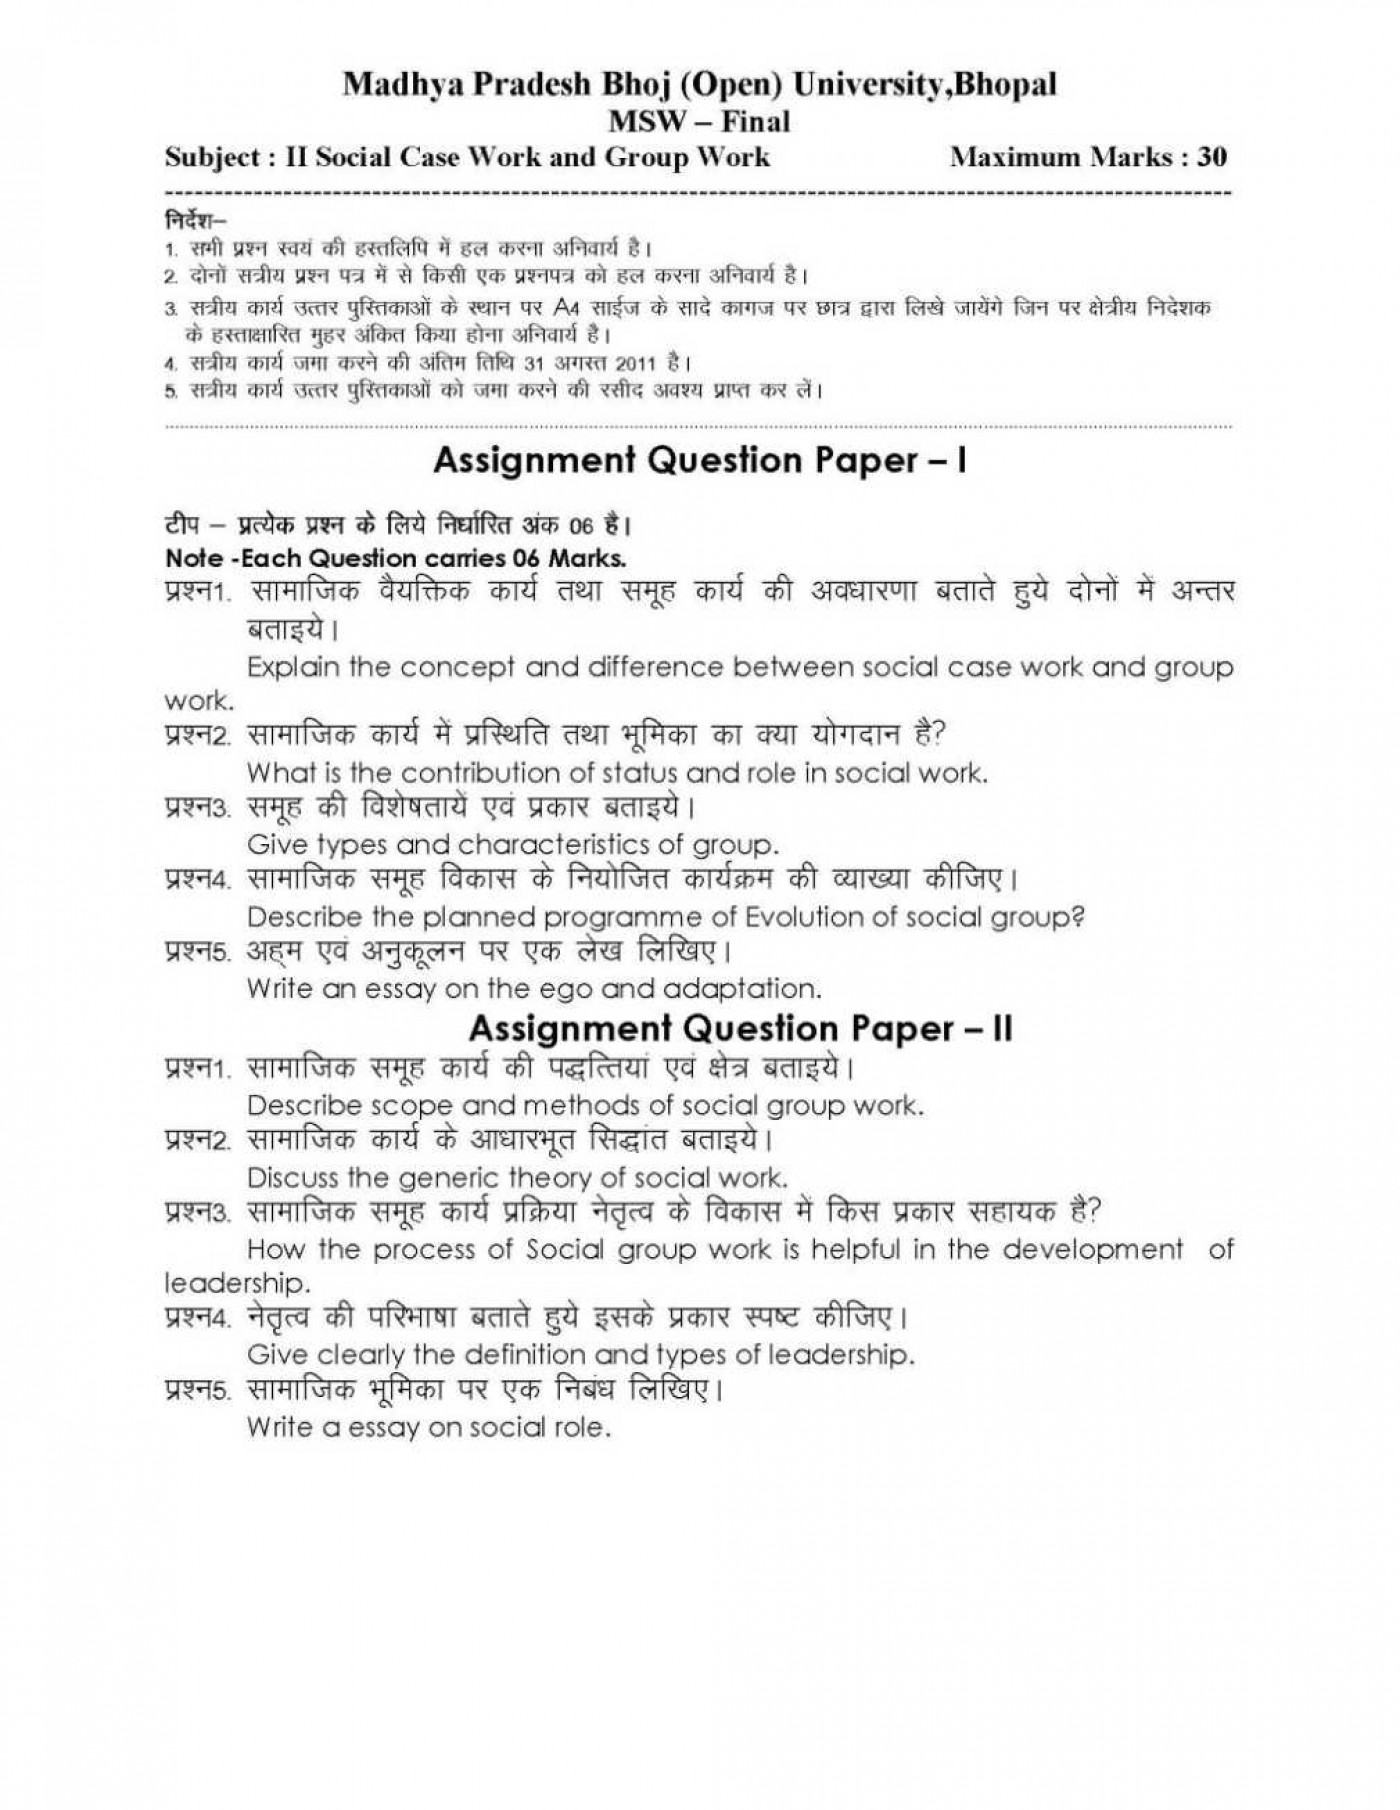 011 Bhoj University Bhopal Msw Leadership Experience Essay Dreaded For Scholarship Describe Your Examples 1400